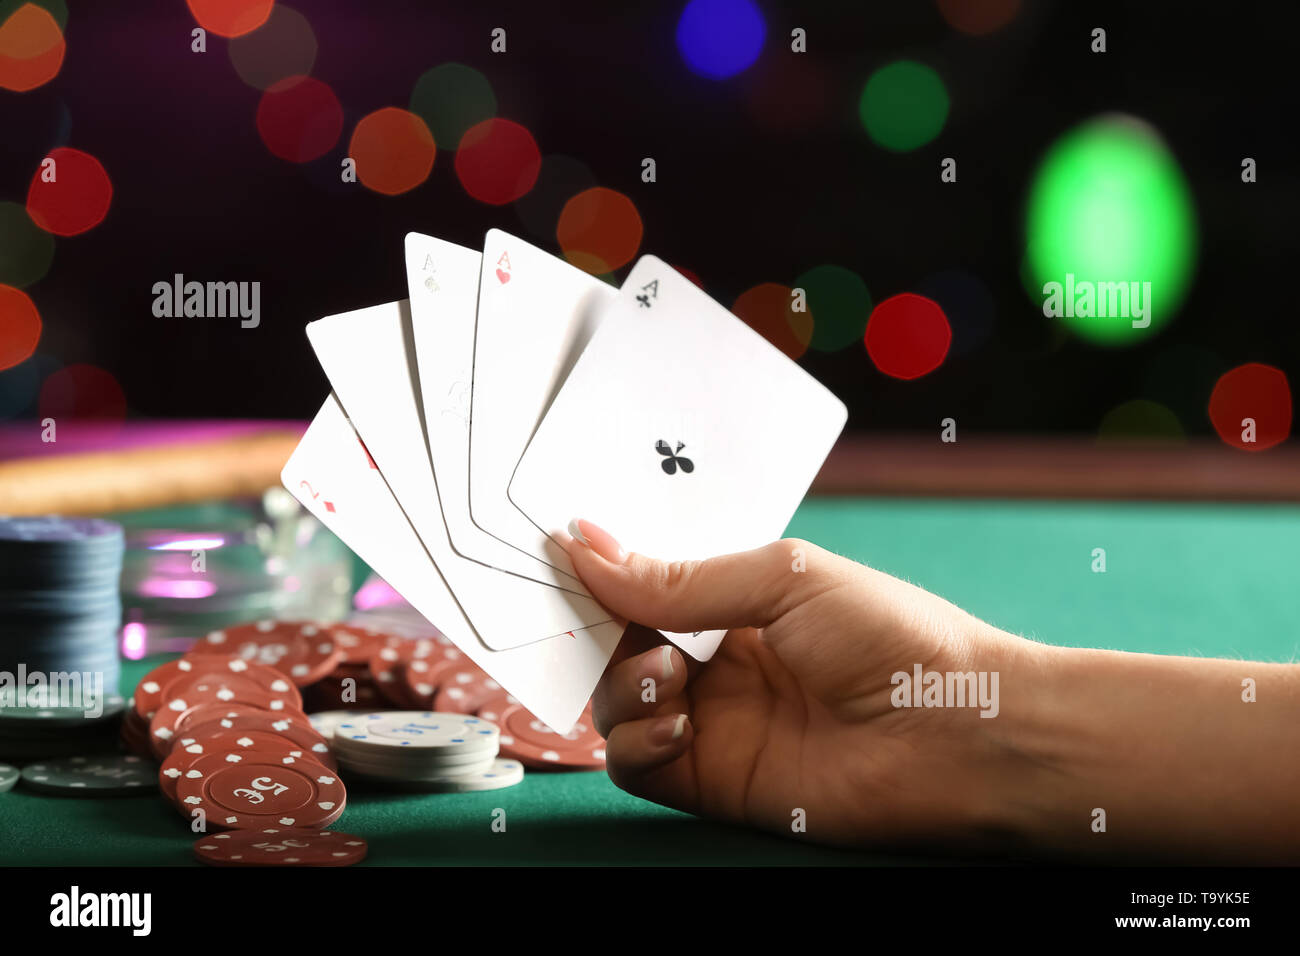 Woman playing cards in casino, closeup - Stock Image